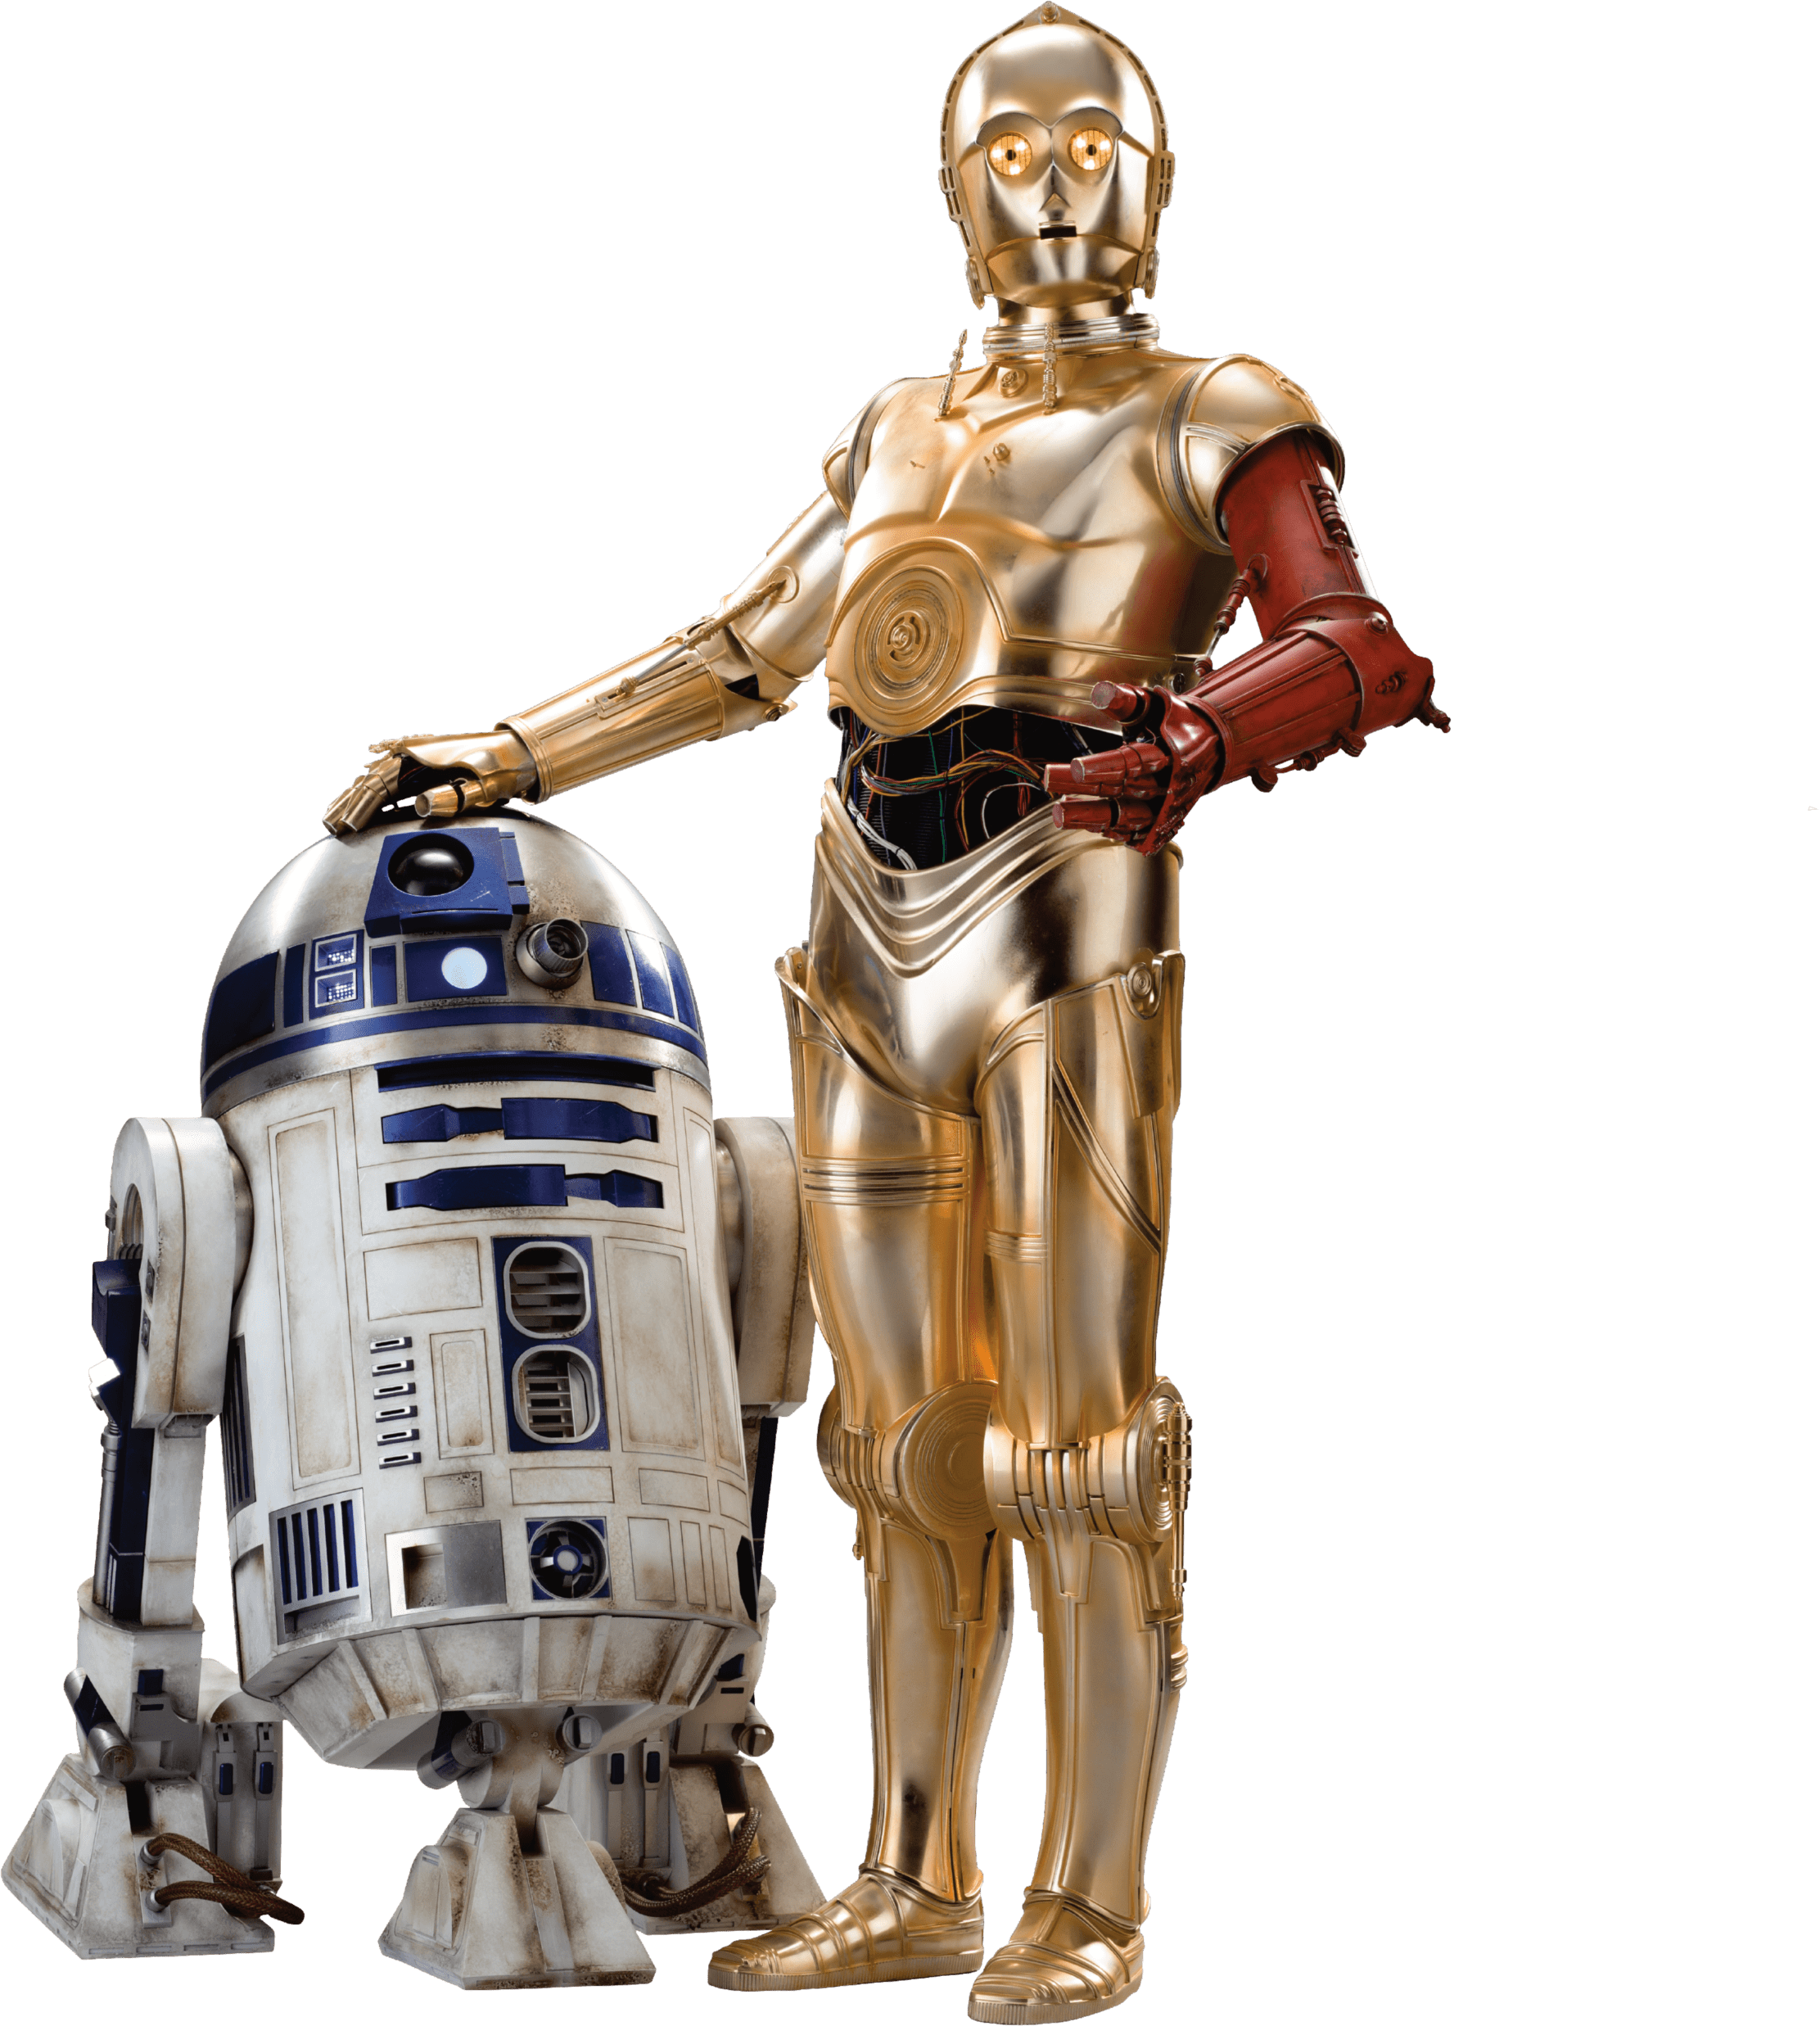 Bb8 clipart transparent background. Bb star wars png